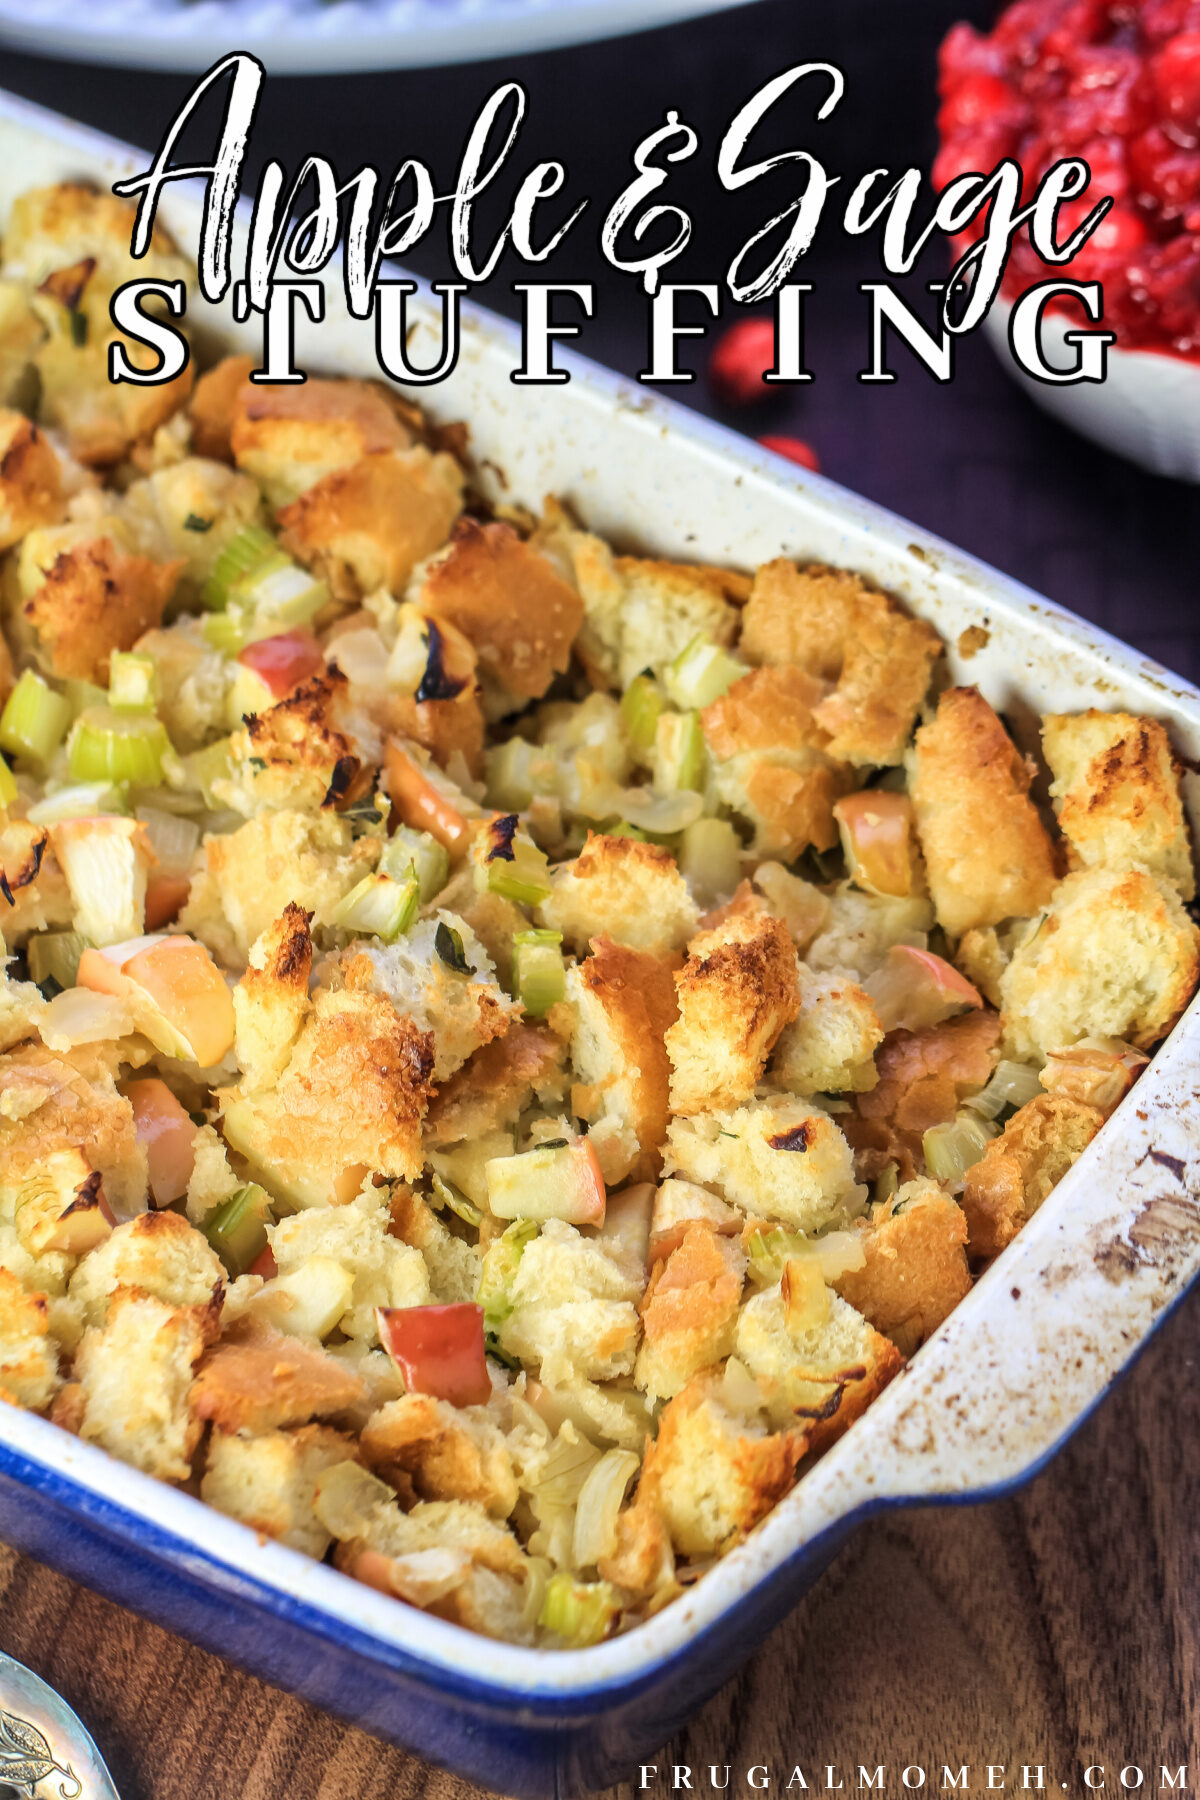 This recipe for Apple and Sage Stuffing is moist, fragrant, and absolutely delicious. It's a perfect Thanksgiving side dish.